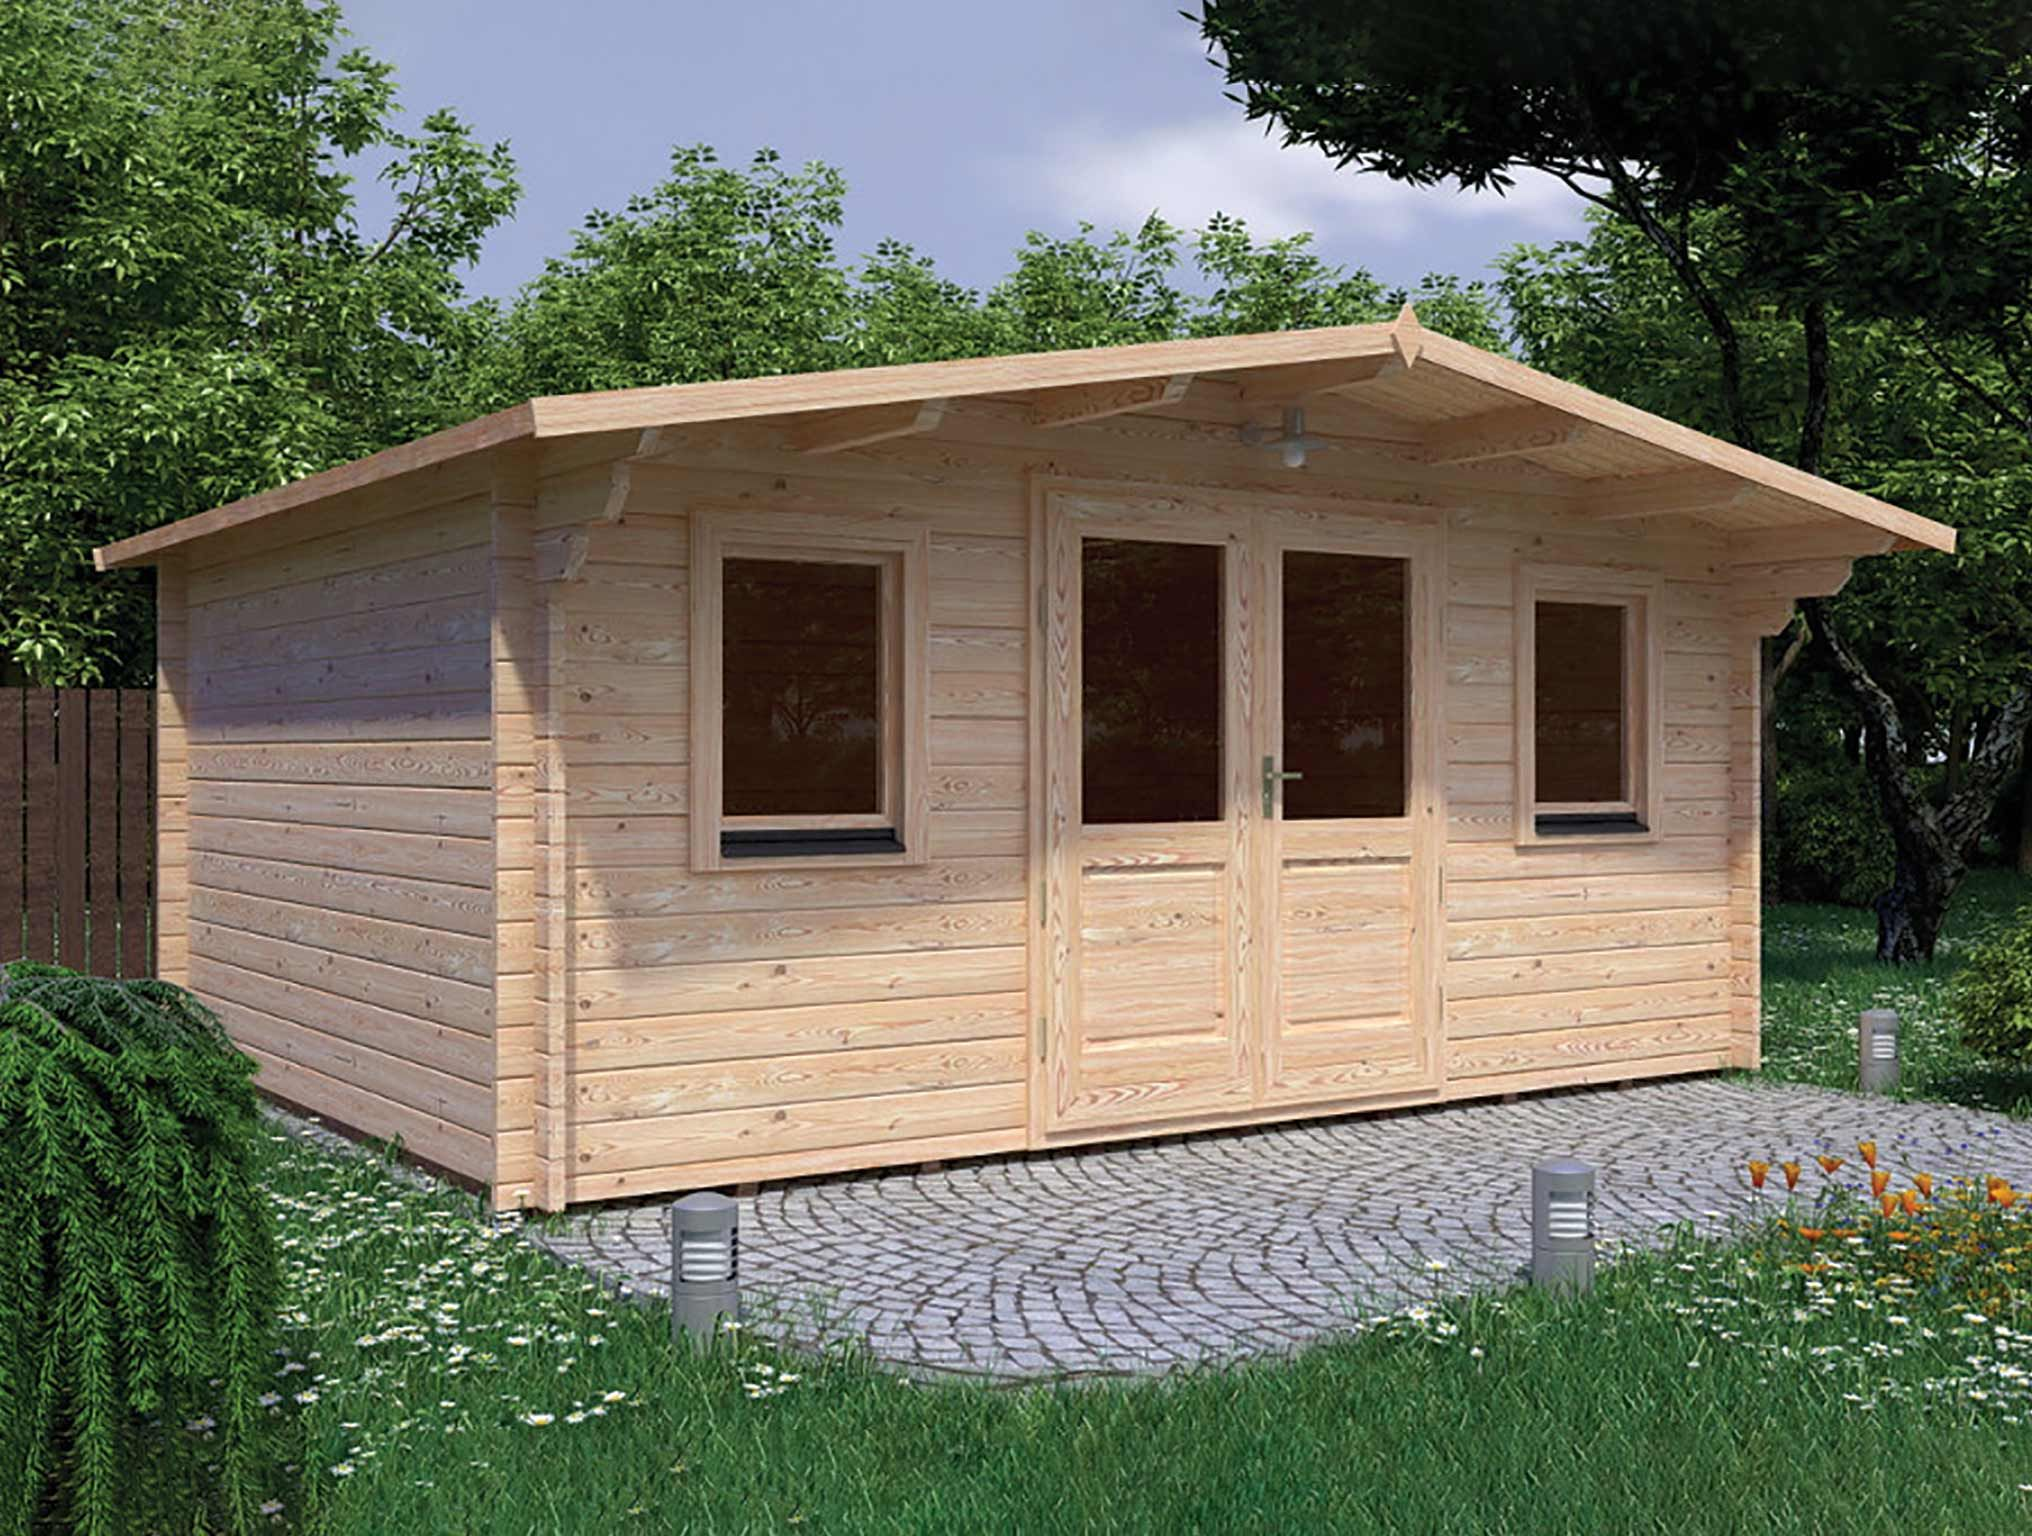 Pin on Shed/summerhouse/garden room